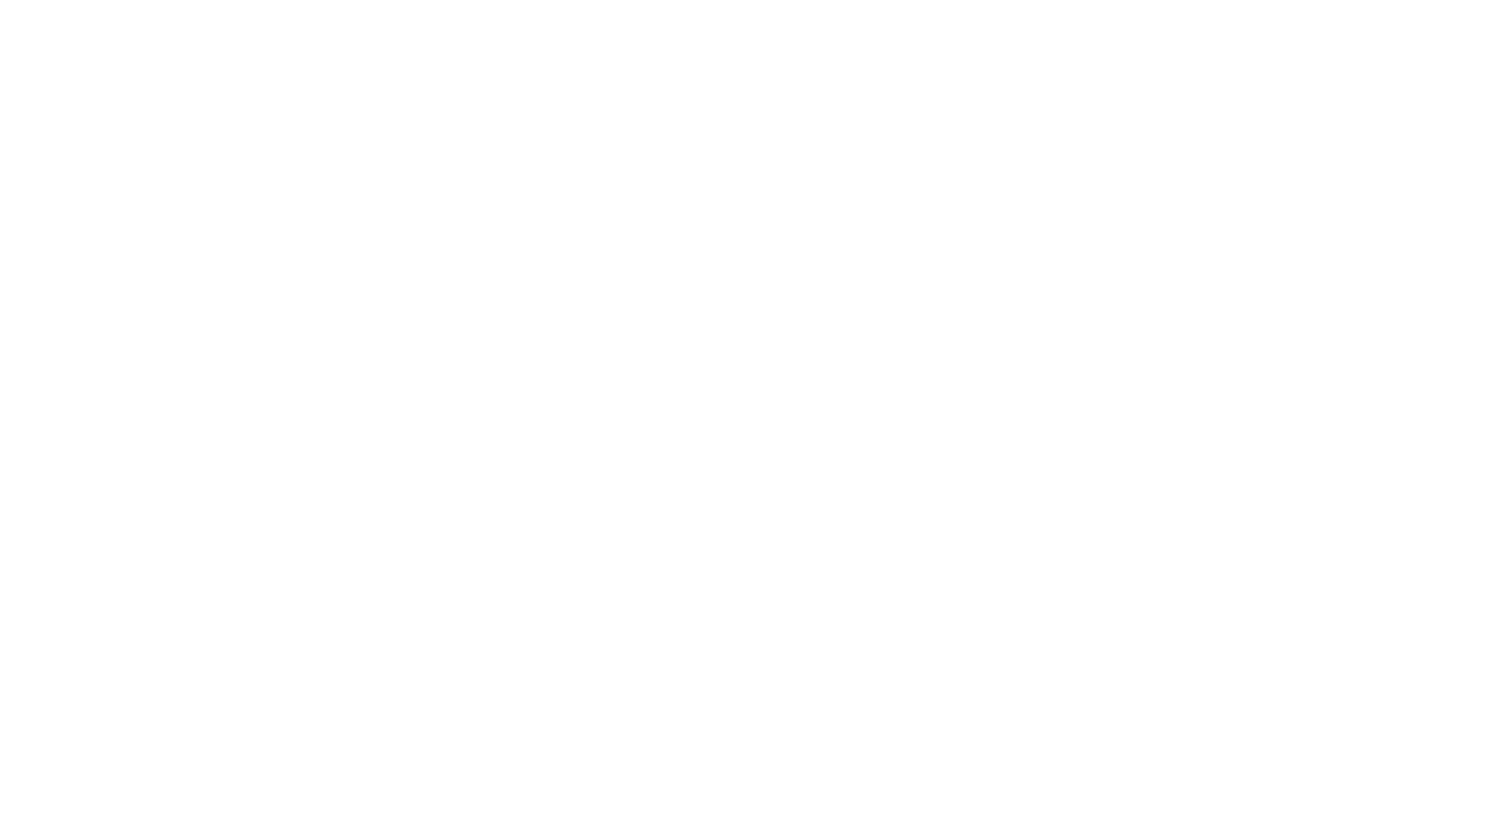 World Global Ministries